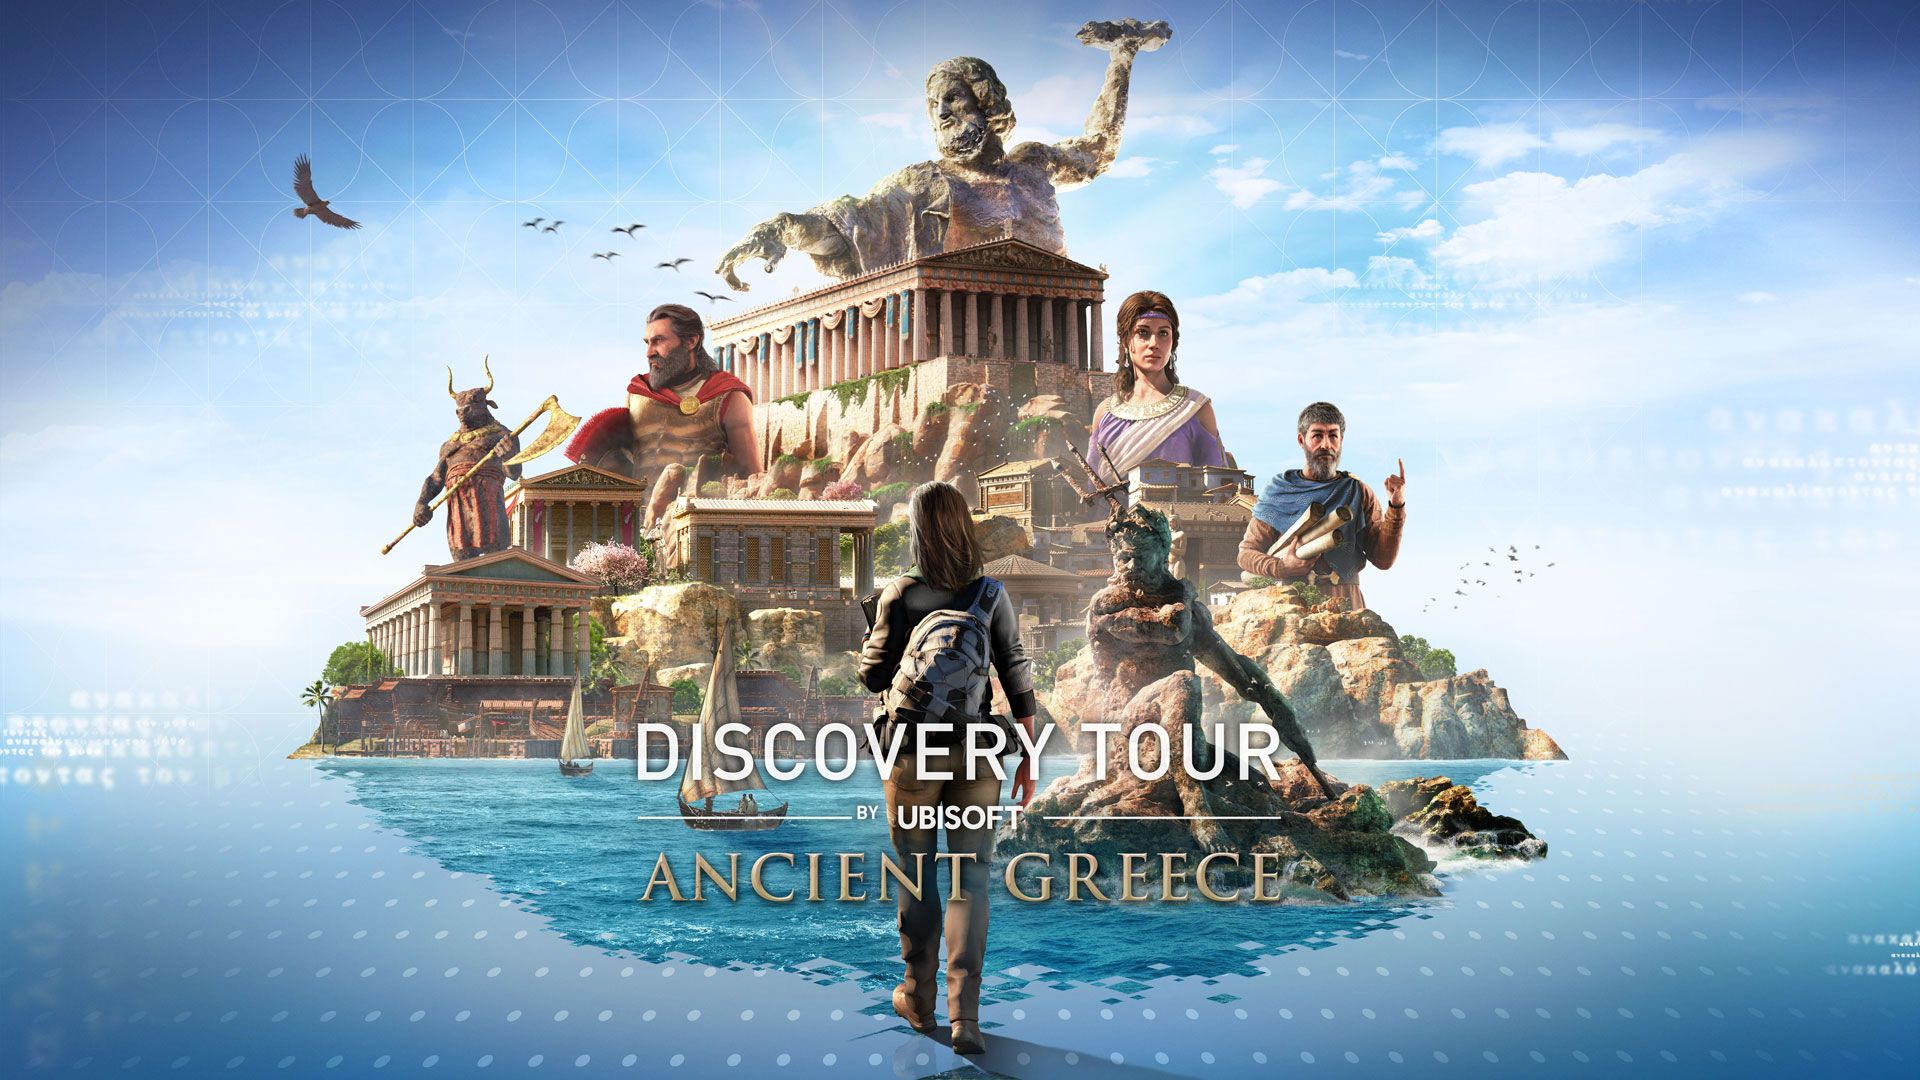 Assassin's Creed Odyssey Available Now on PS4, Xbox One, PC